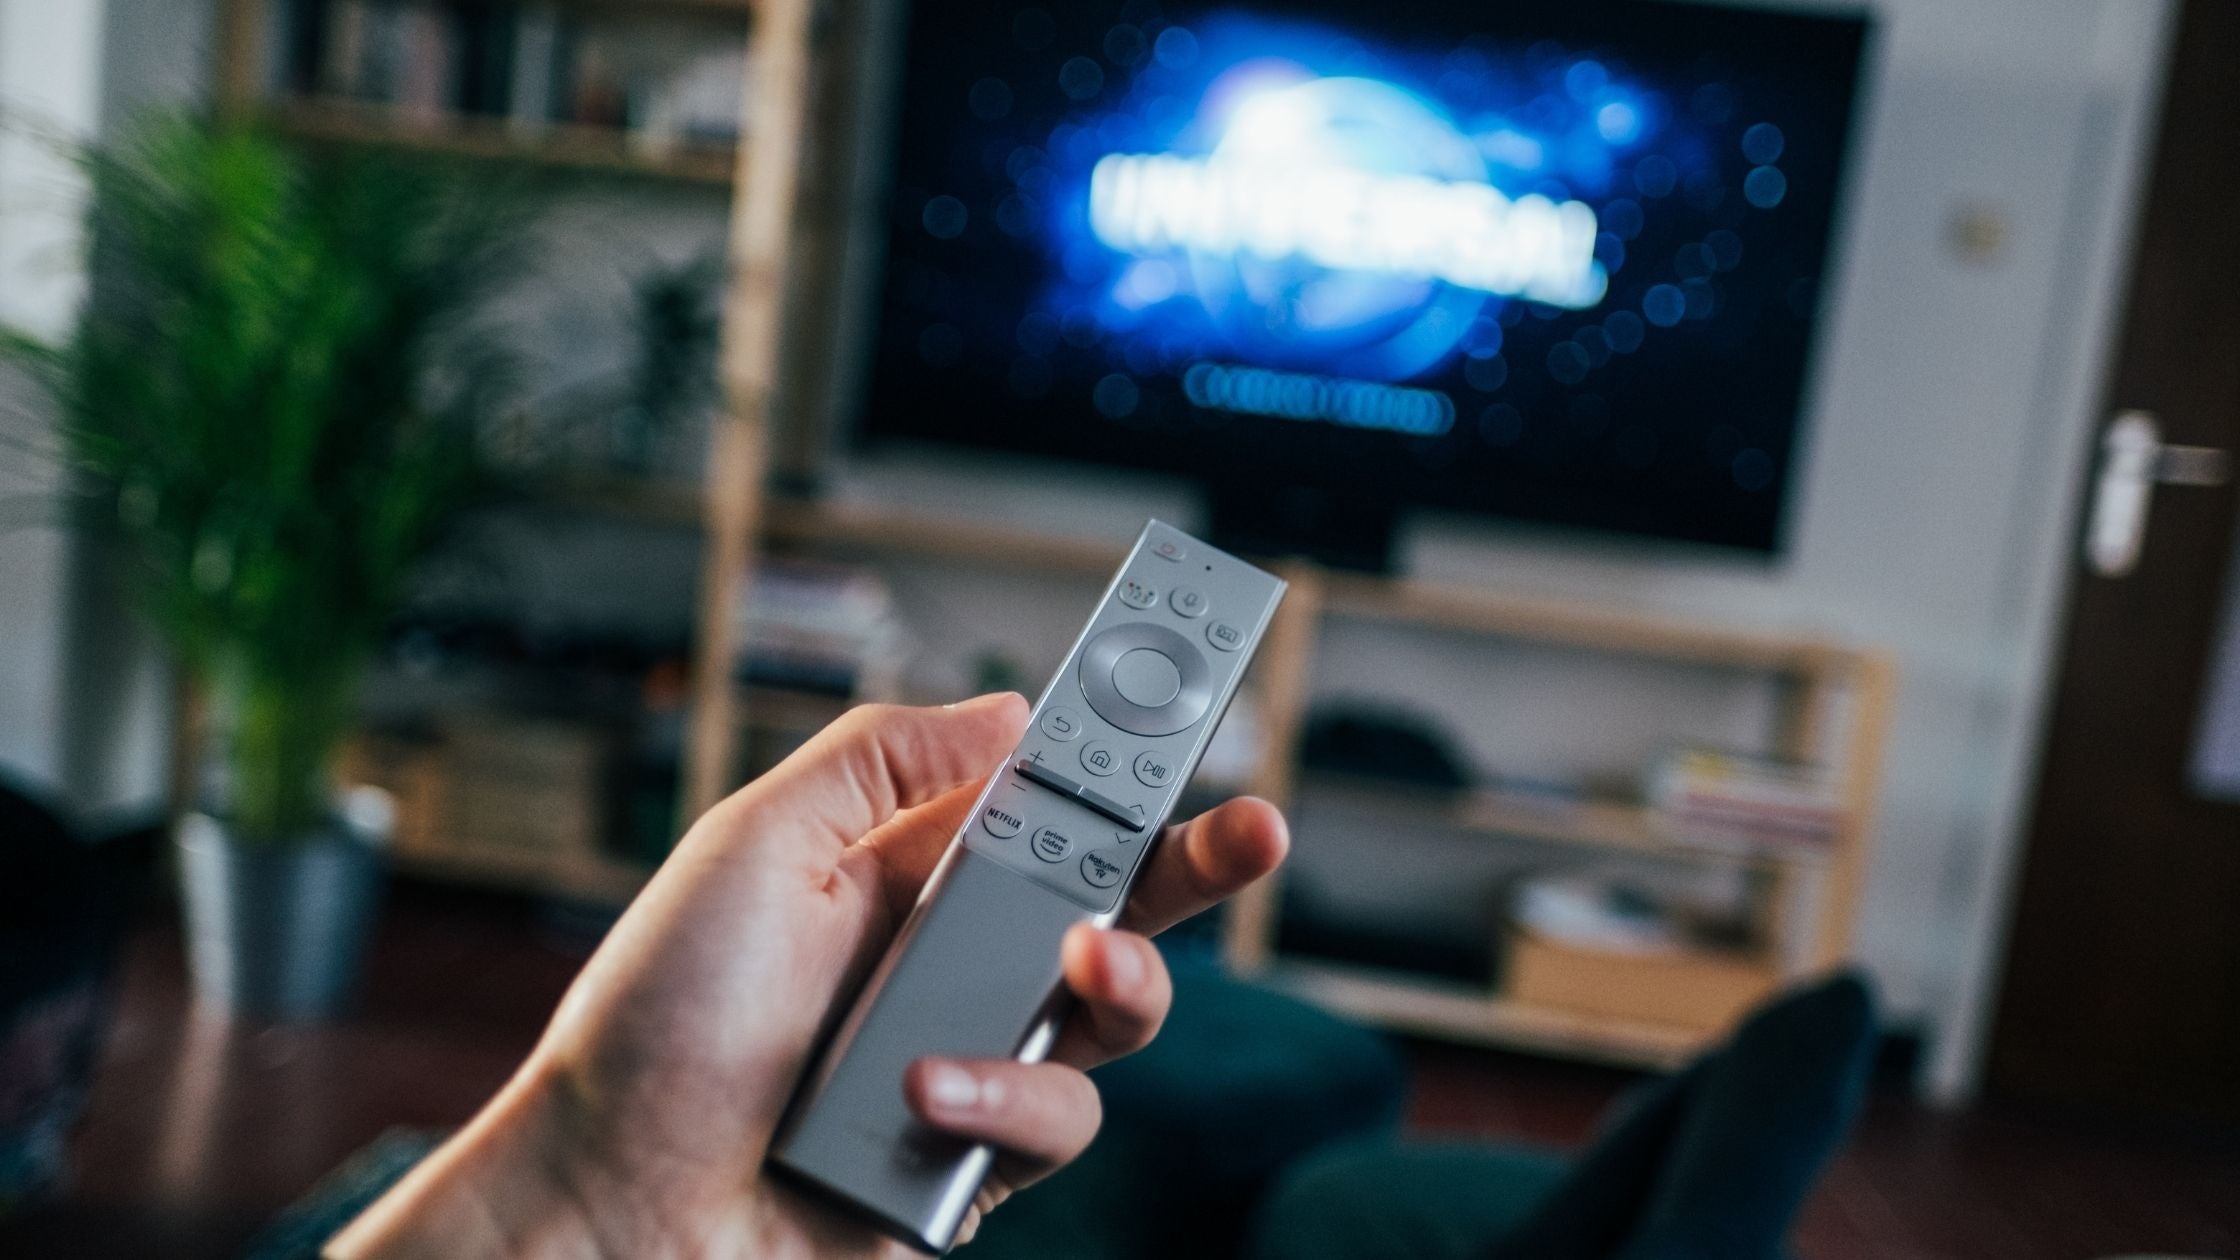 3. You constantly turn the volume up on the television.